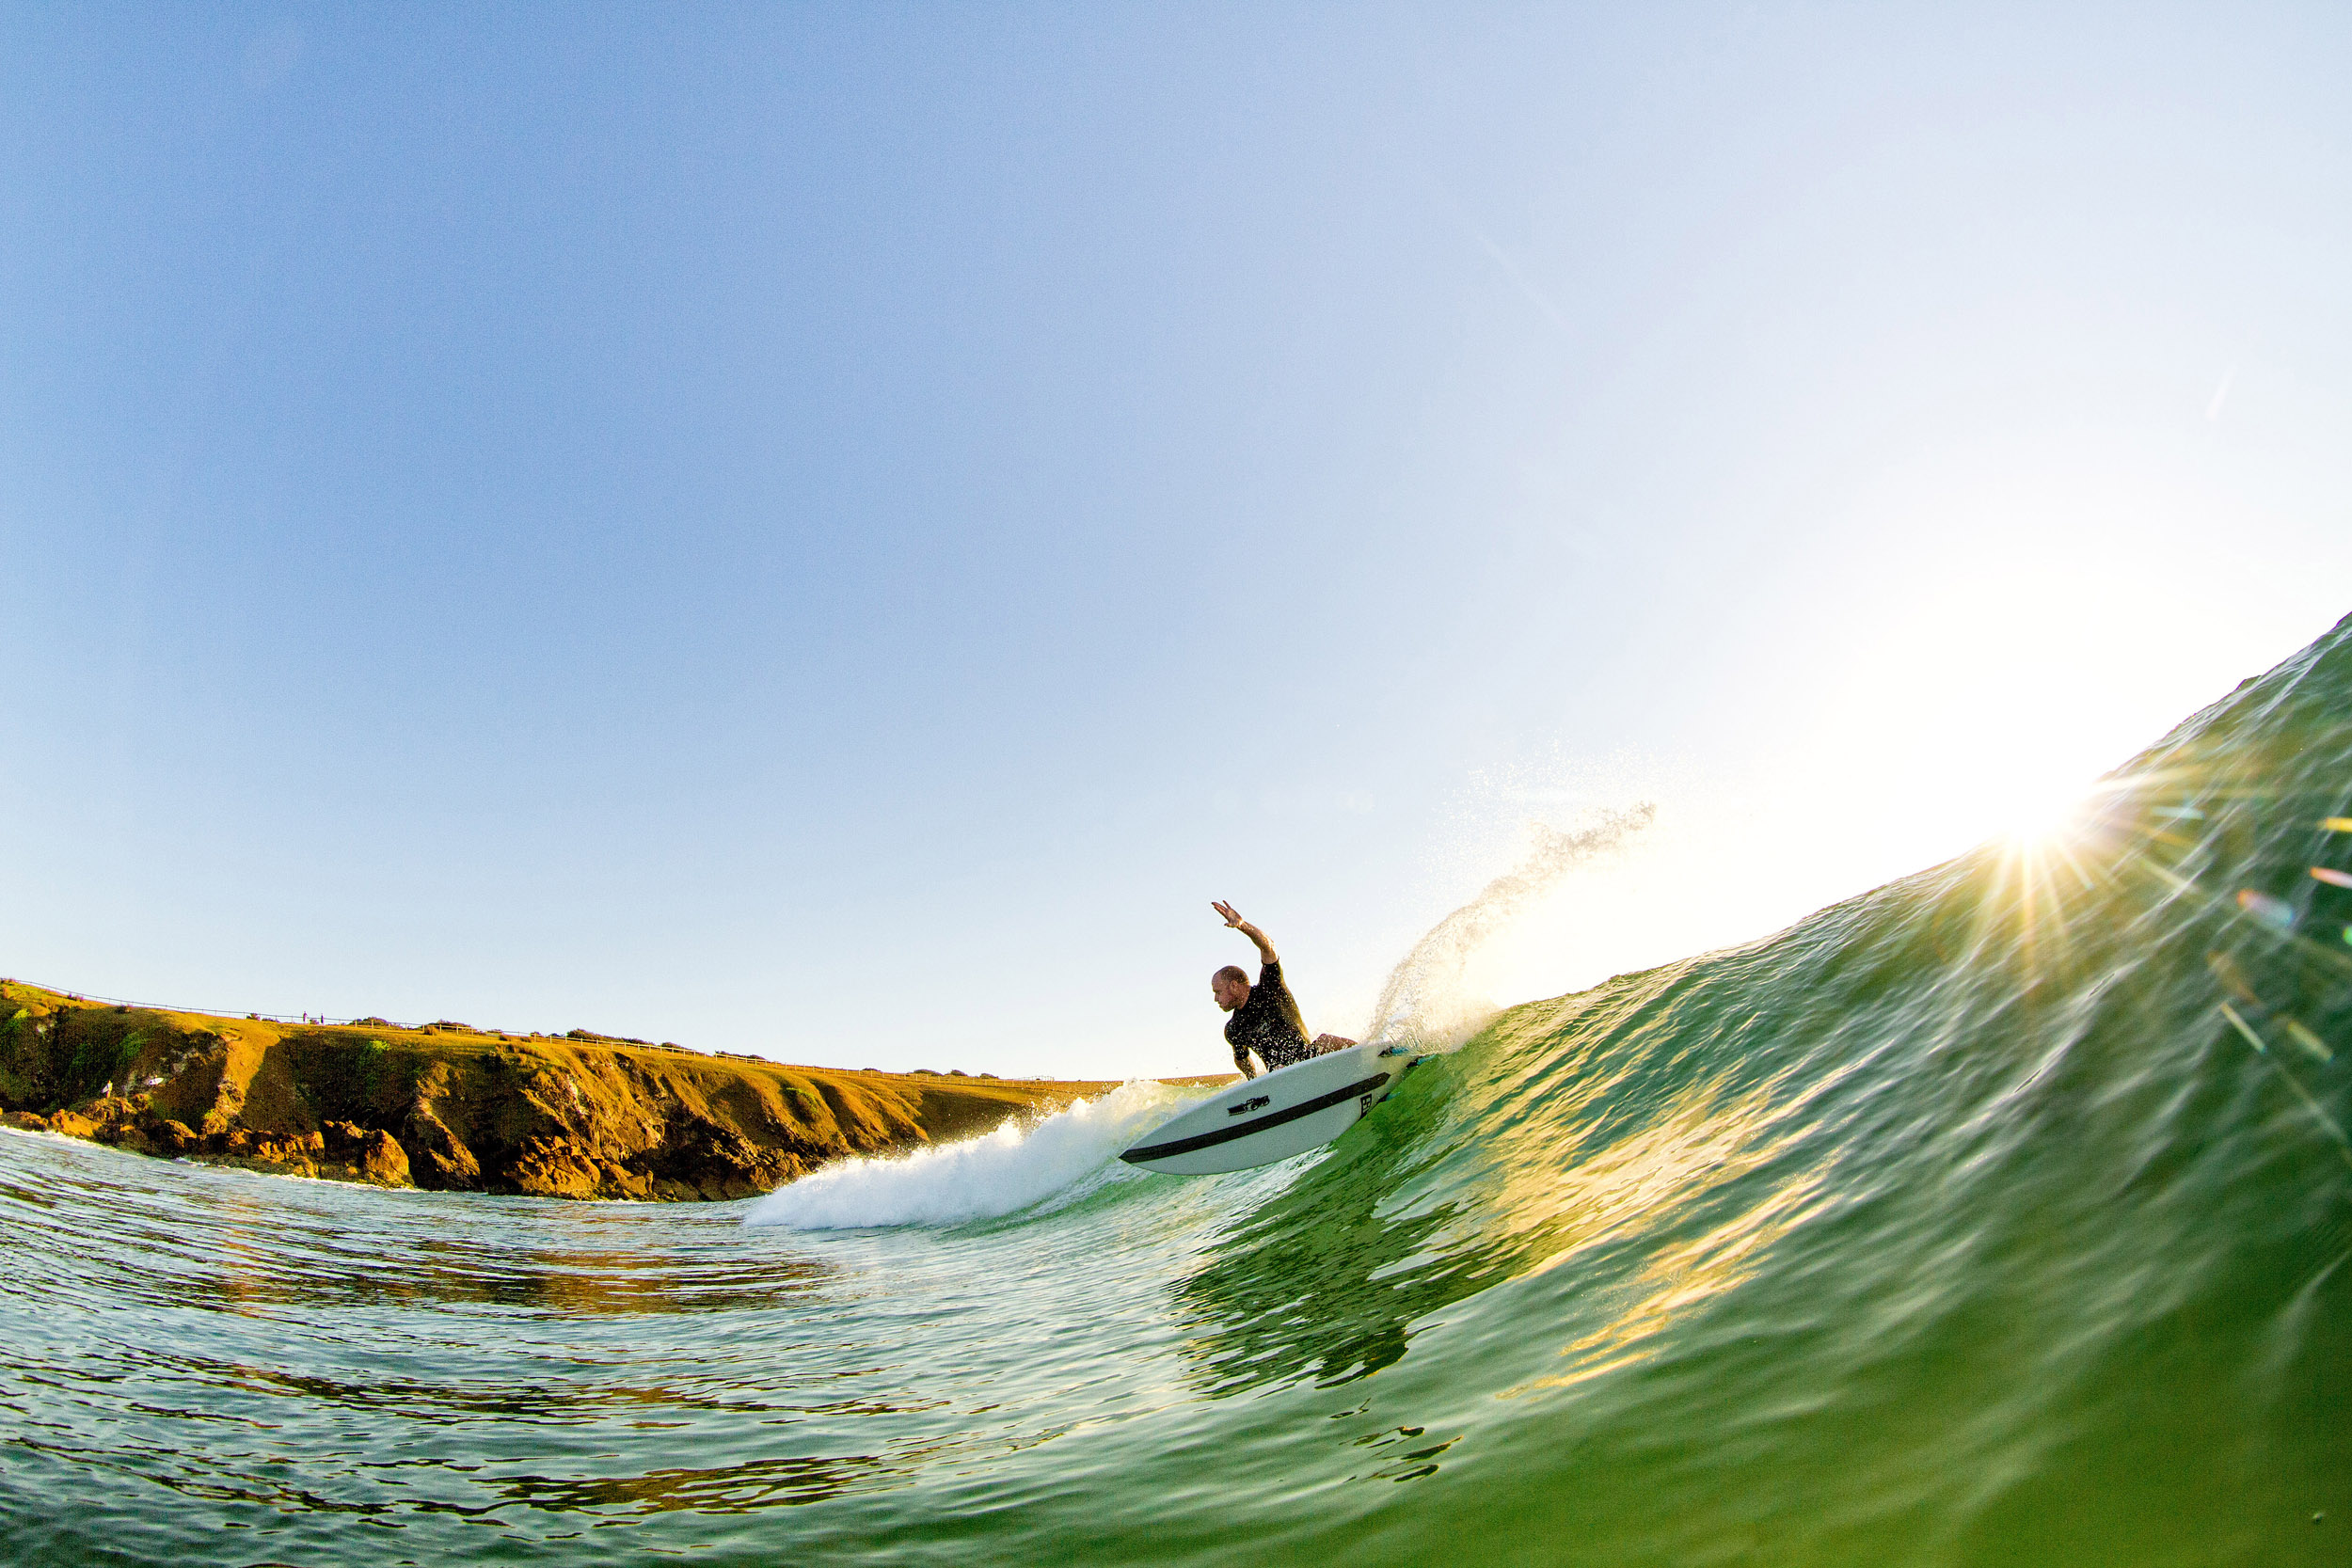 surf-photographer-water-view-S1035-204-Edit.jpg